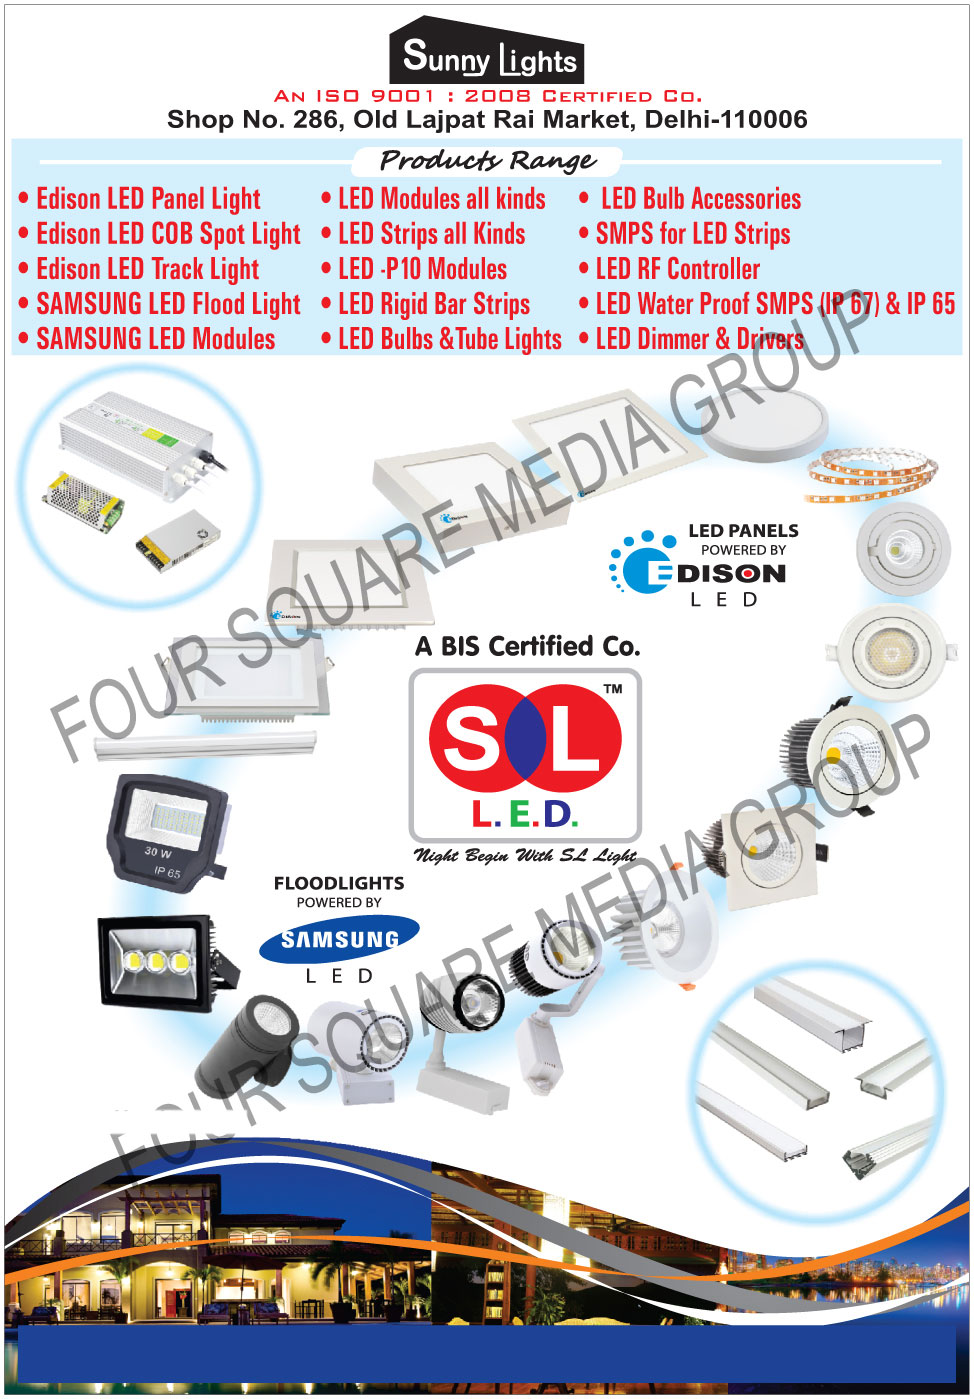 Led Lights, EDISON LED Panel Lights, LED Tube Lights, EL Wire LED Lights, LED, LED Strip, LED Modules, LED Rigid Bar Strip, LED Panel Lights, Led Strip SMPS, SMPS IP, RGB RF Controller, Time Controller, Rain Proof SMPS, LED Bulb Accessories, EDISON LED Cob Spot Lights, EDISON LED Track Lights, LED Flood Lights, LED Modules, Led Dimmers, Led Drivers, Led P10 Modules, Led Bulbs, Led Rf Controllers, Led Water Proof SMPS, Led Waterproof SMPS